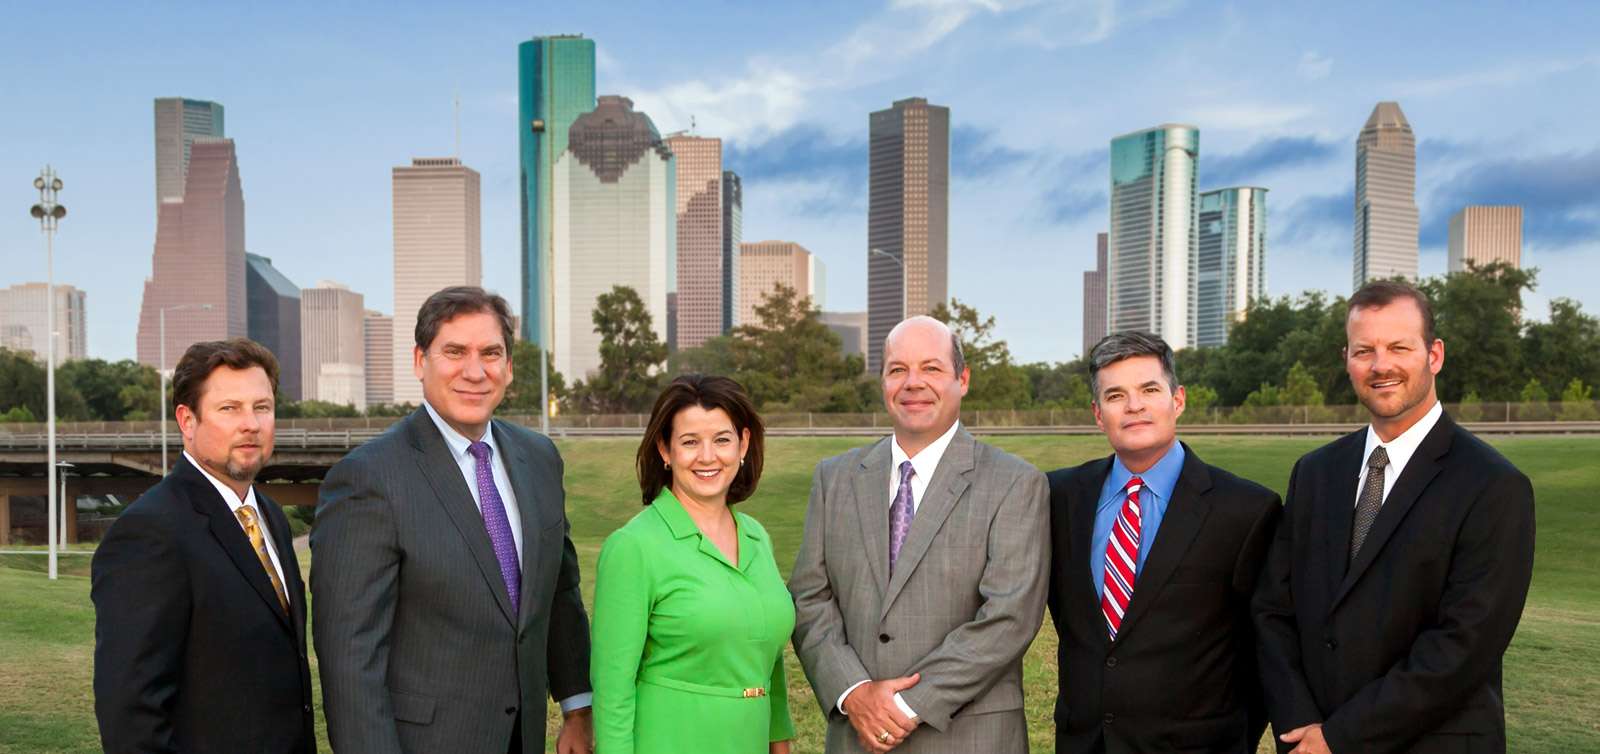 Taylor Taylor & Russell Attorneys at Law Houston Texas